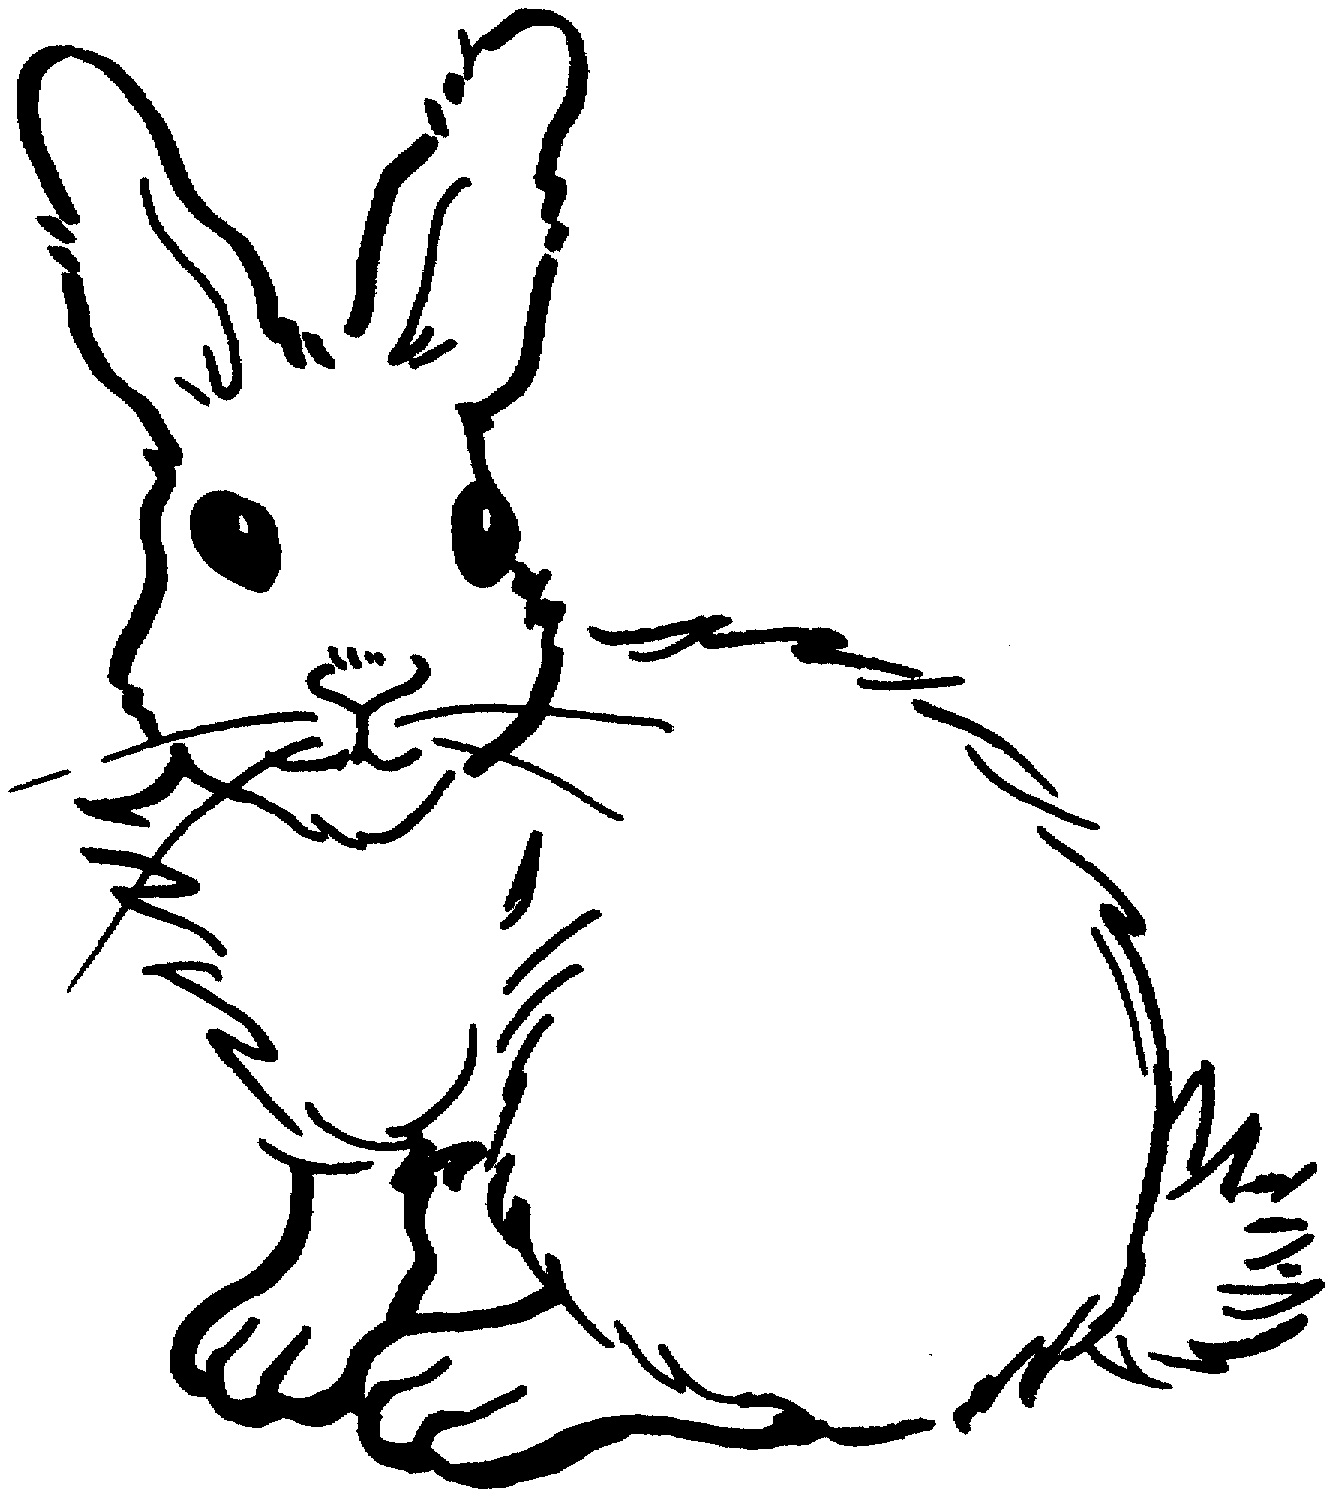 1332x1496 Jack Rabbit Clipart Rabbit Outline